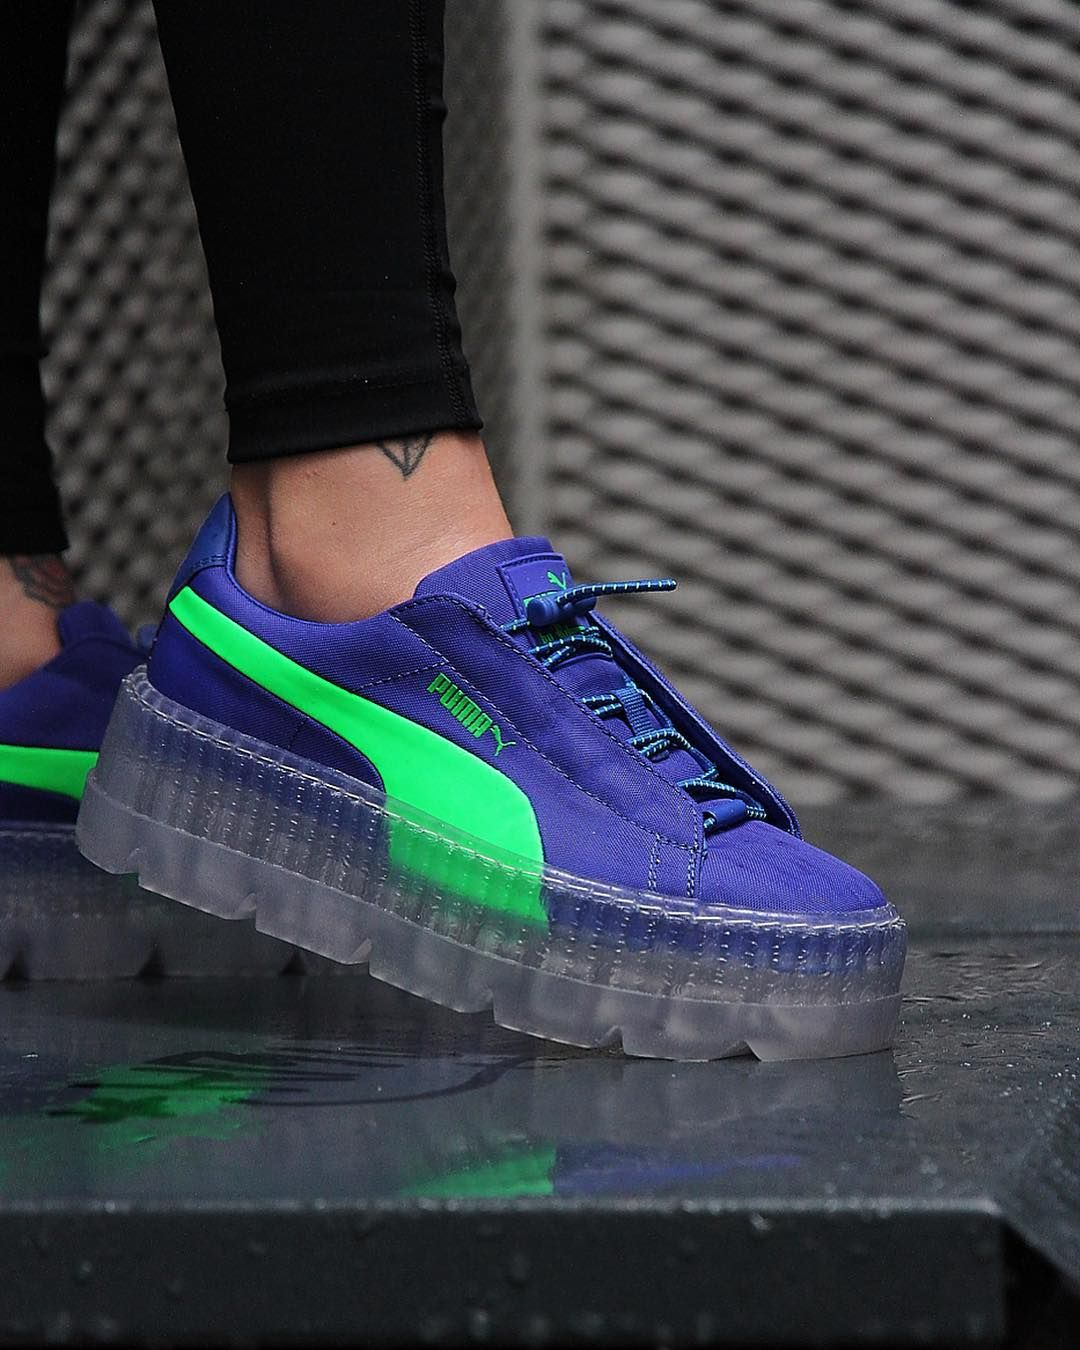 Rihanna x PUMA Fenty Cleated Creeper Surf